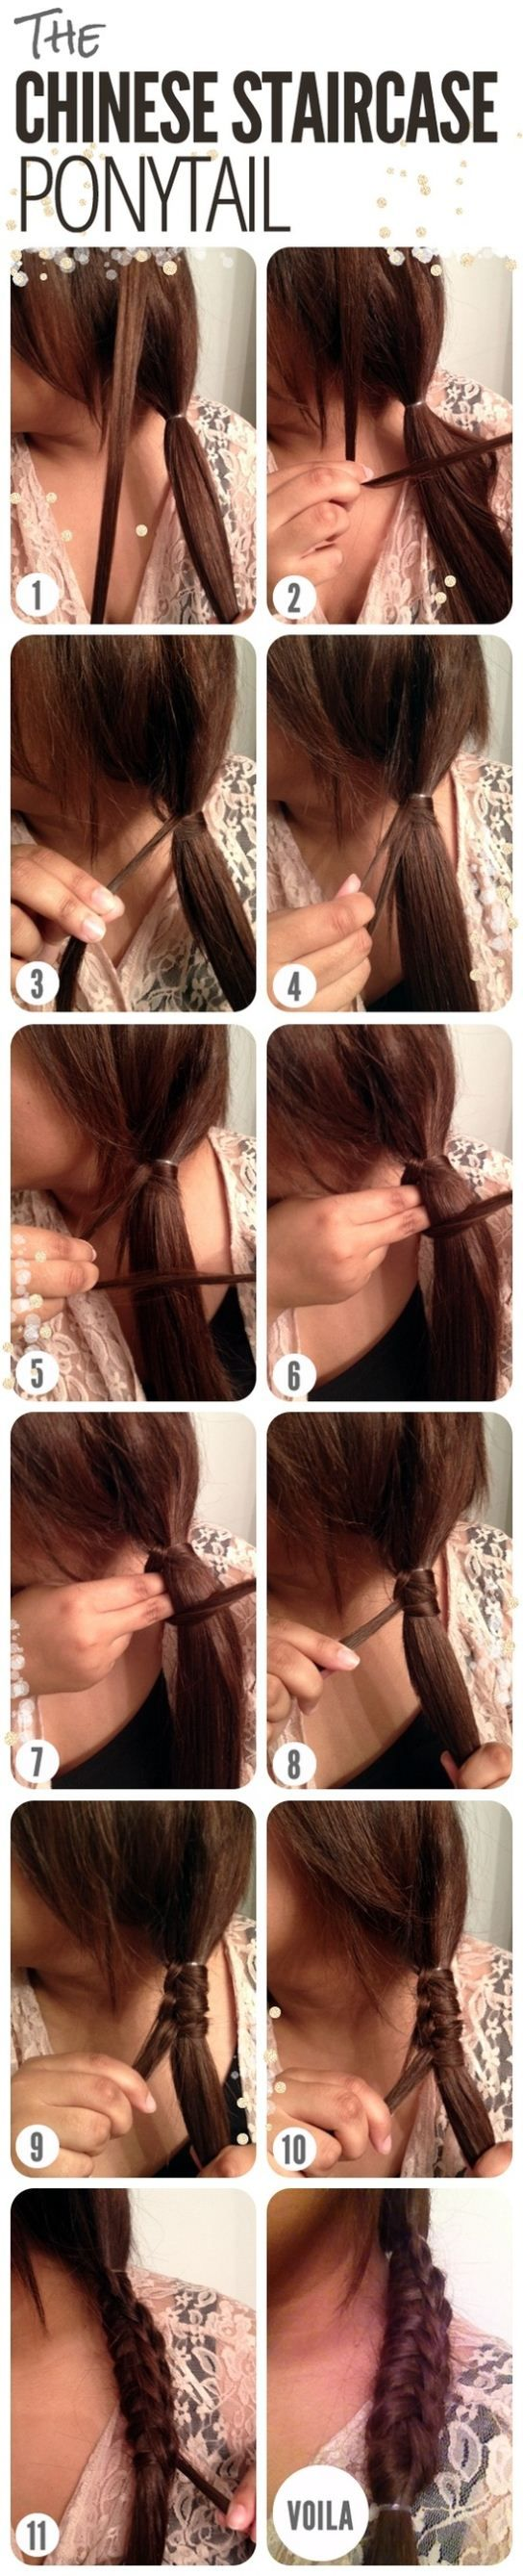 13 Interesting Tutorials for Everyday Hairstyles - Pretty Designs